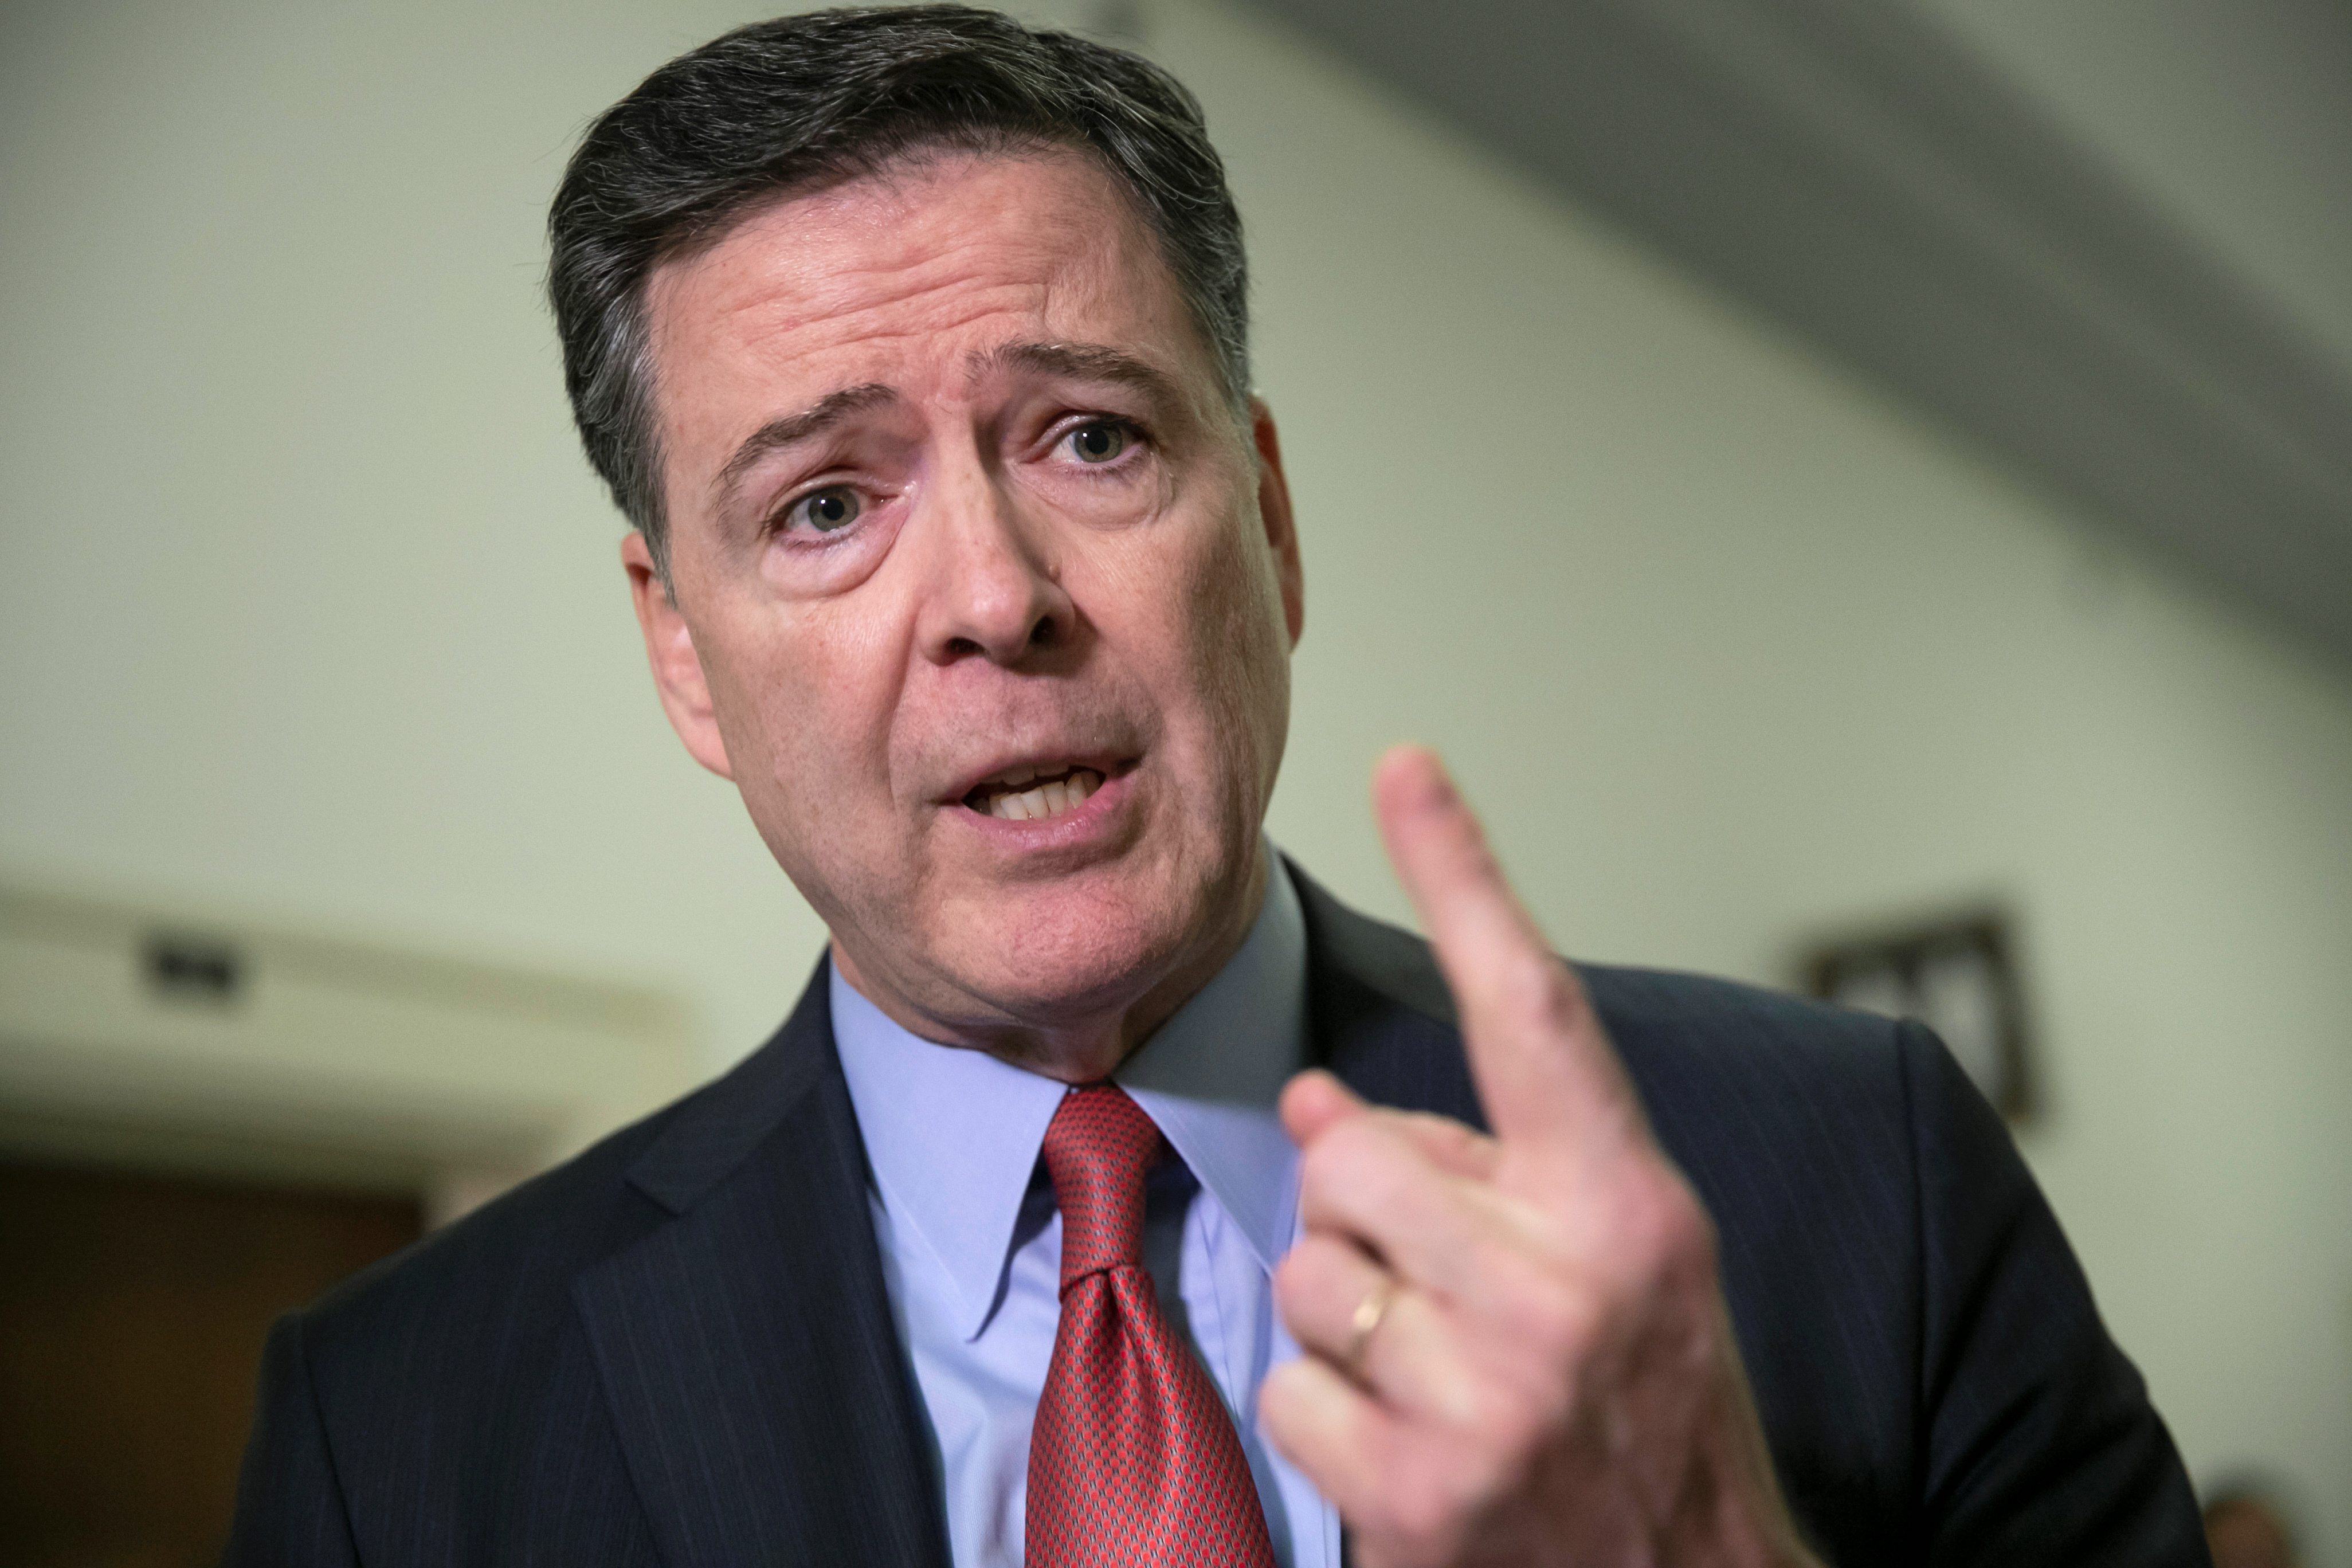 Comey's violations of FBI policy damage public trust in agency, ability to gather information